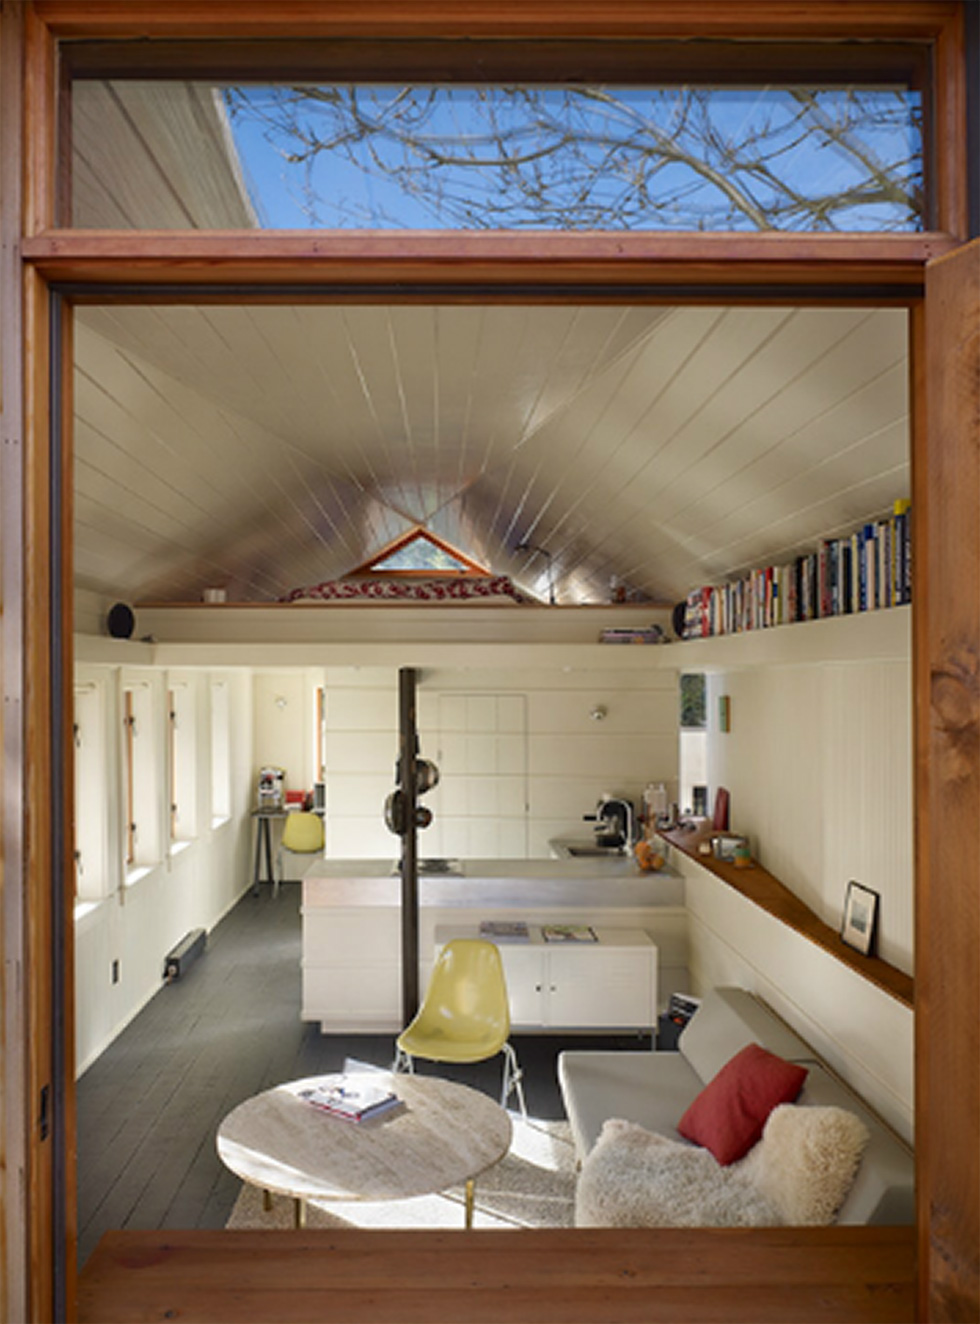 How To Convert A Garage Into A Room